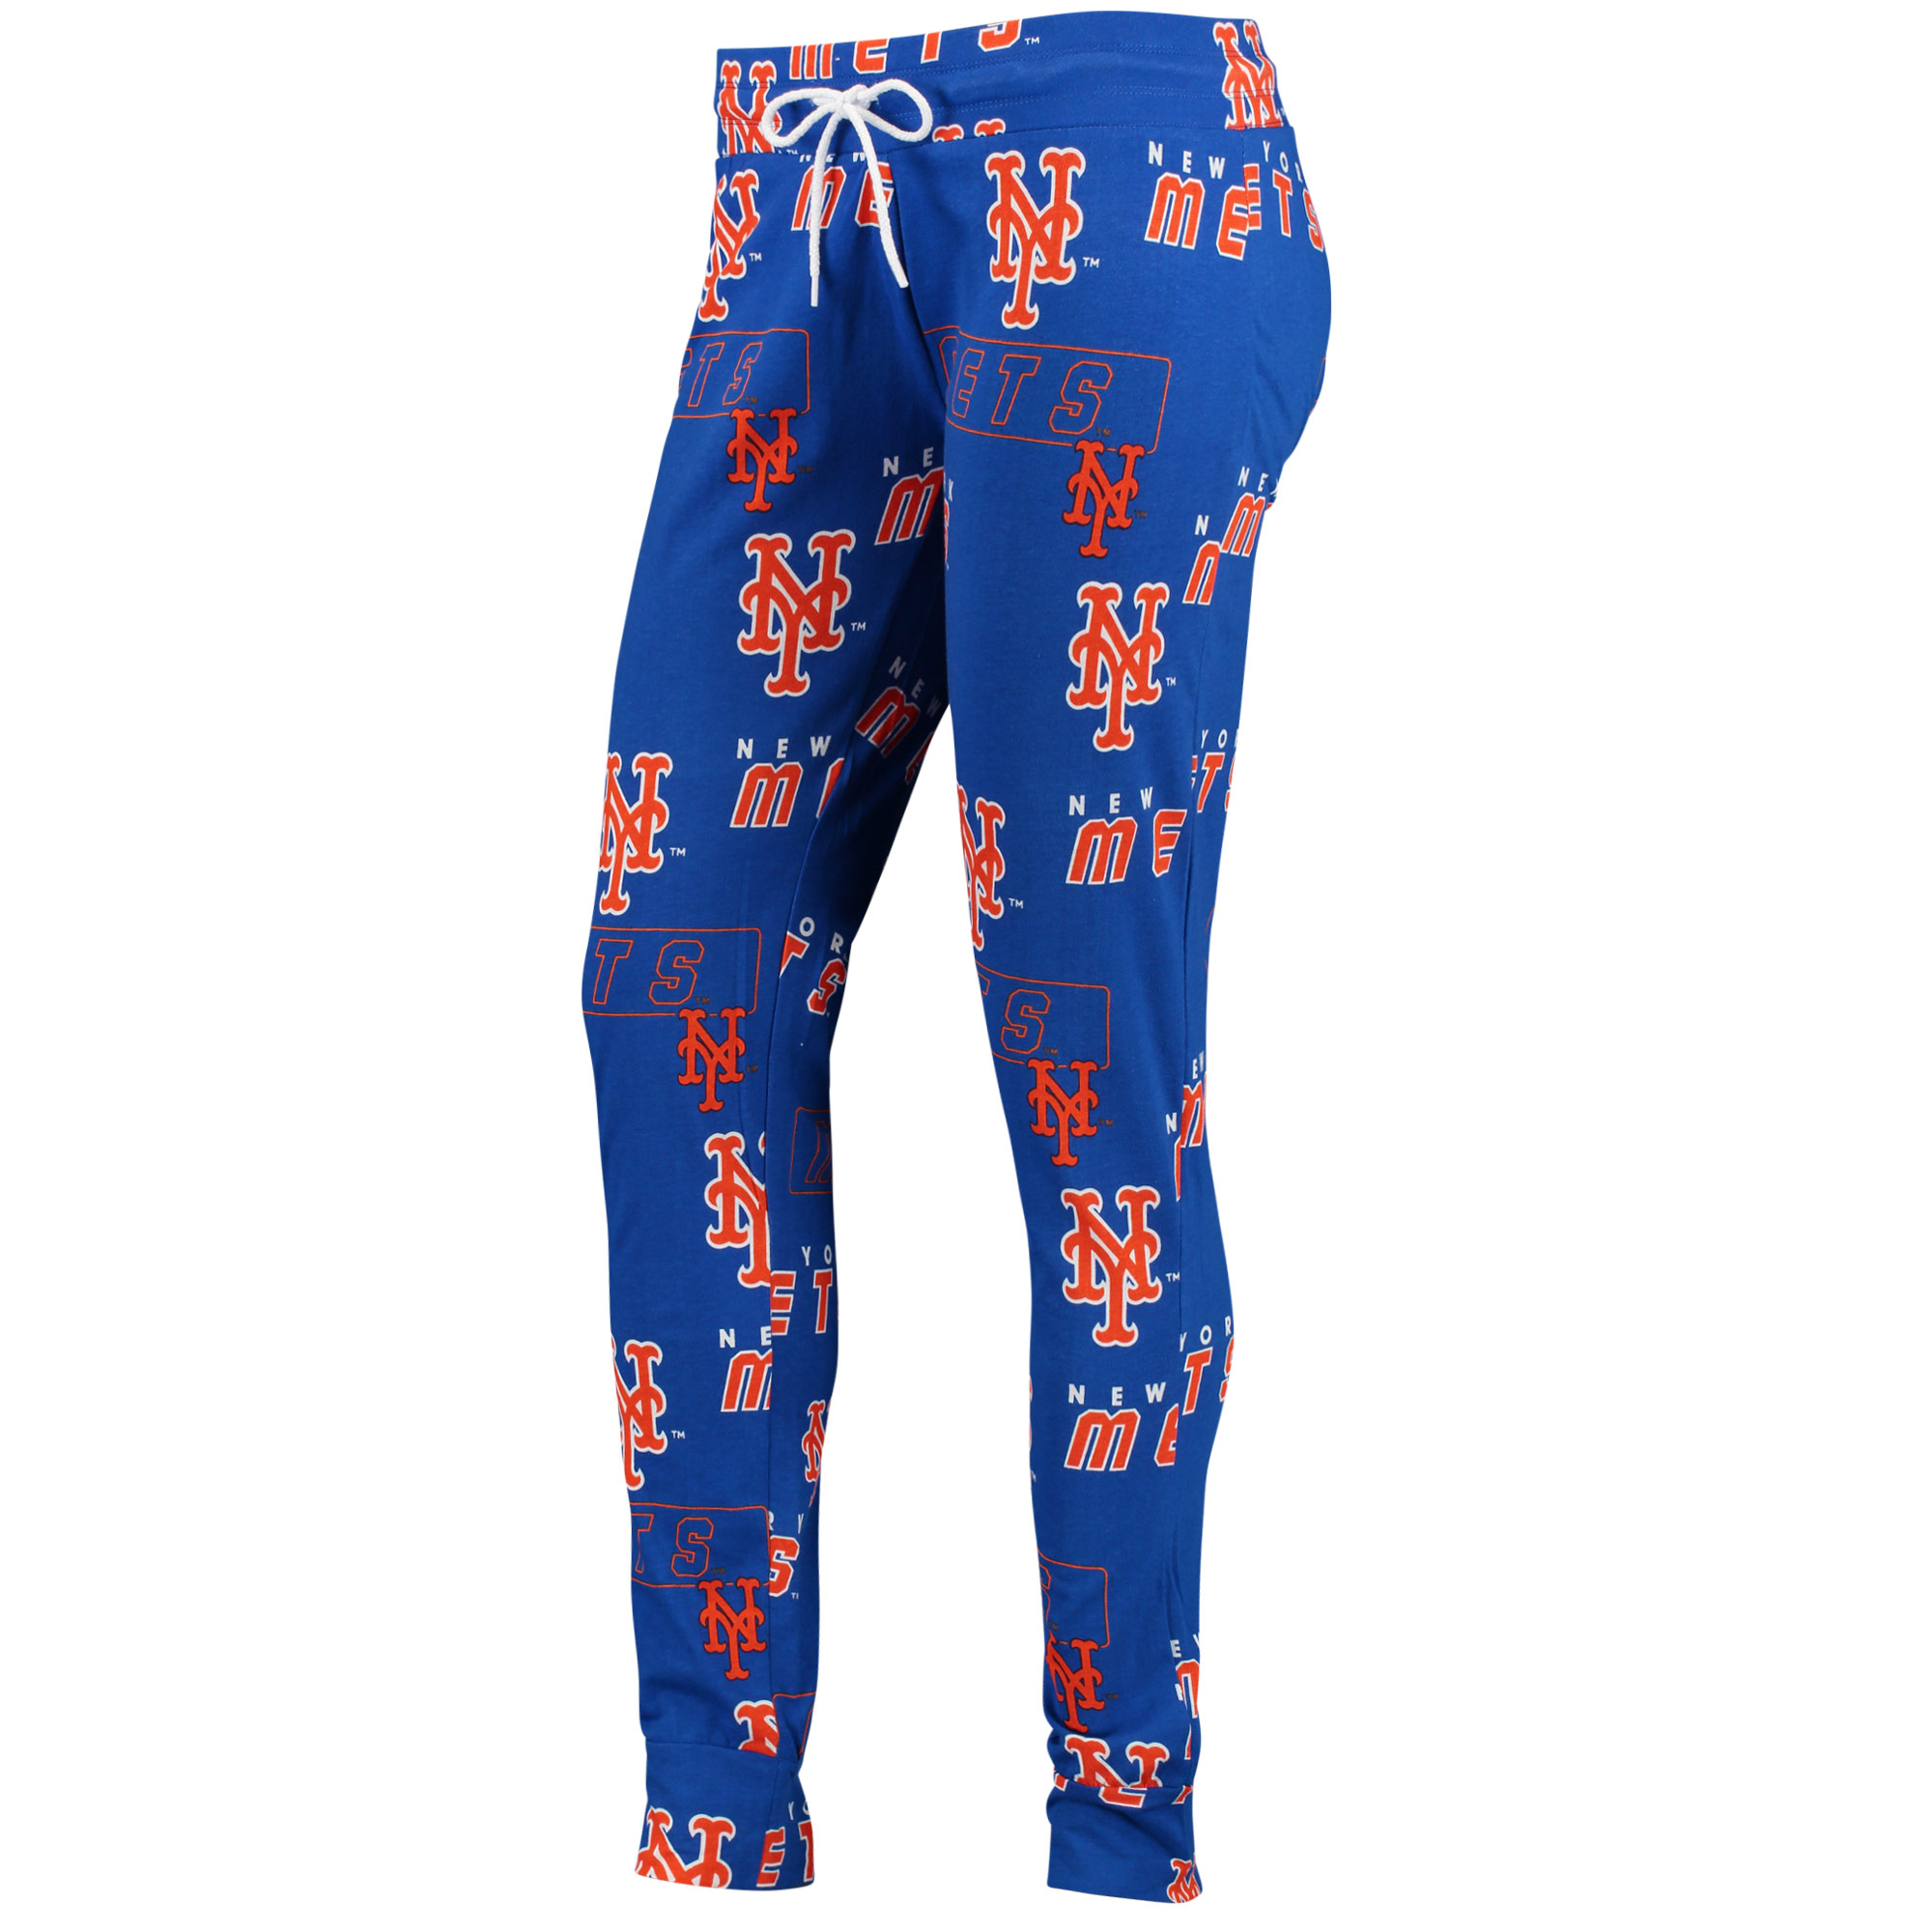 New York Mets Concepts Sport Women's Slide Knit Pajama Pants - Royal